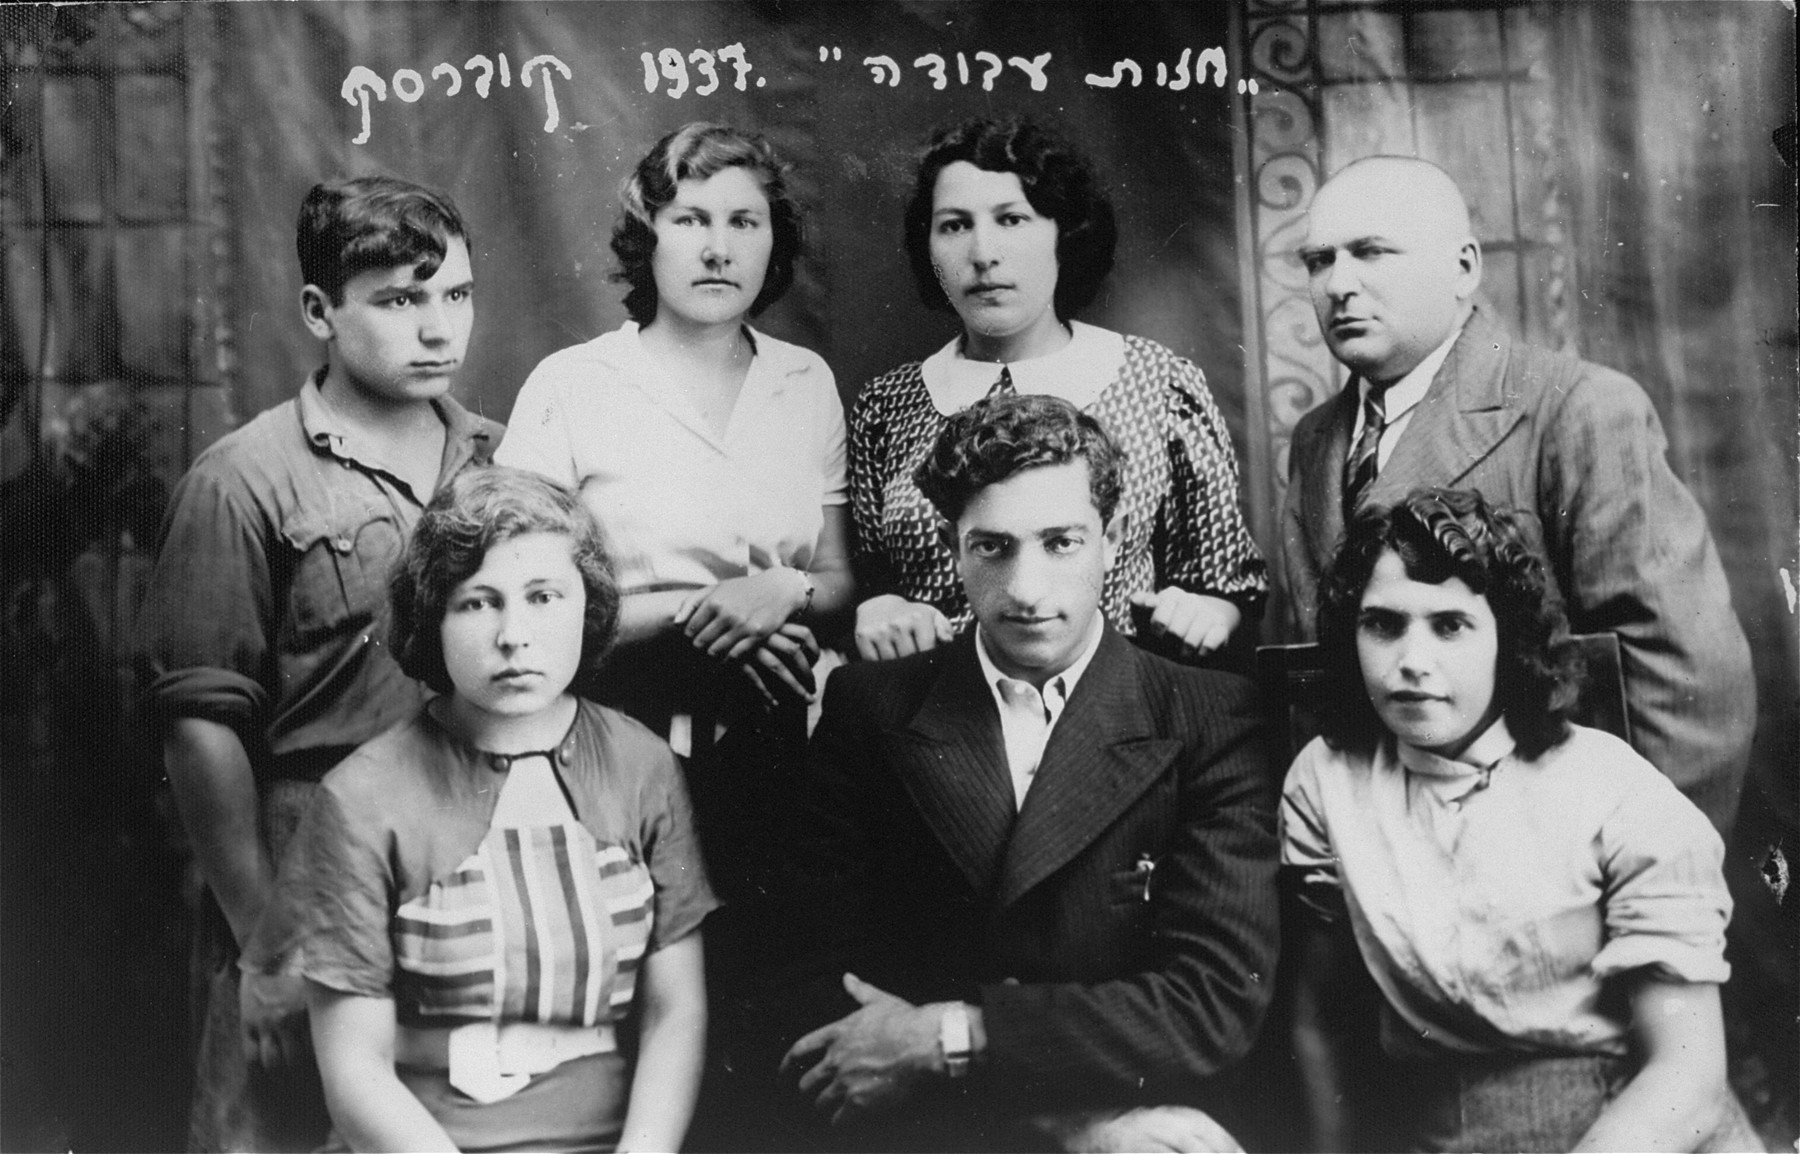 Group portrait of members of the Zionist Labor Front in Kovarskas, Lithuania.  Pictured in the front row is Eliezer Kaplan.